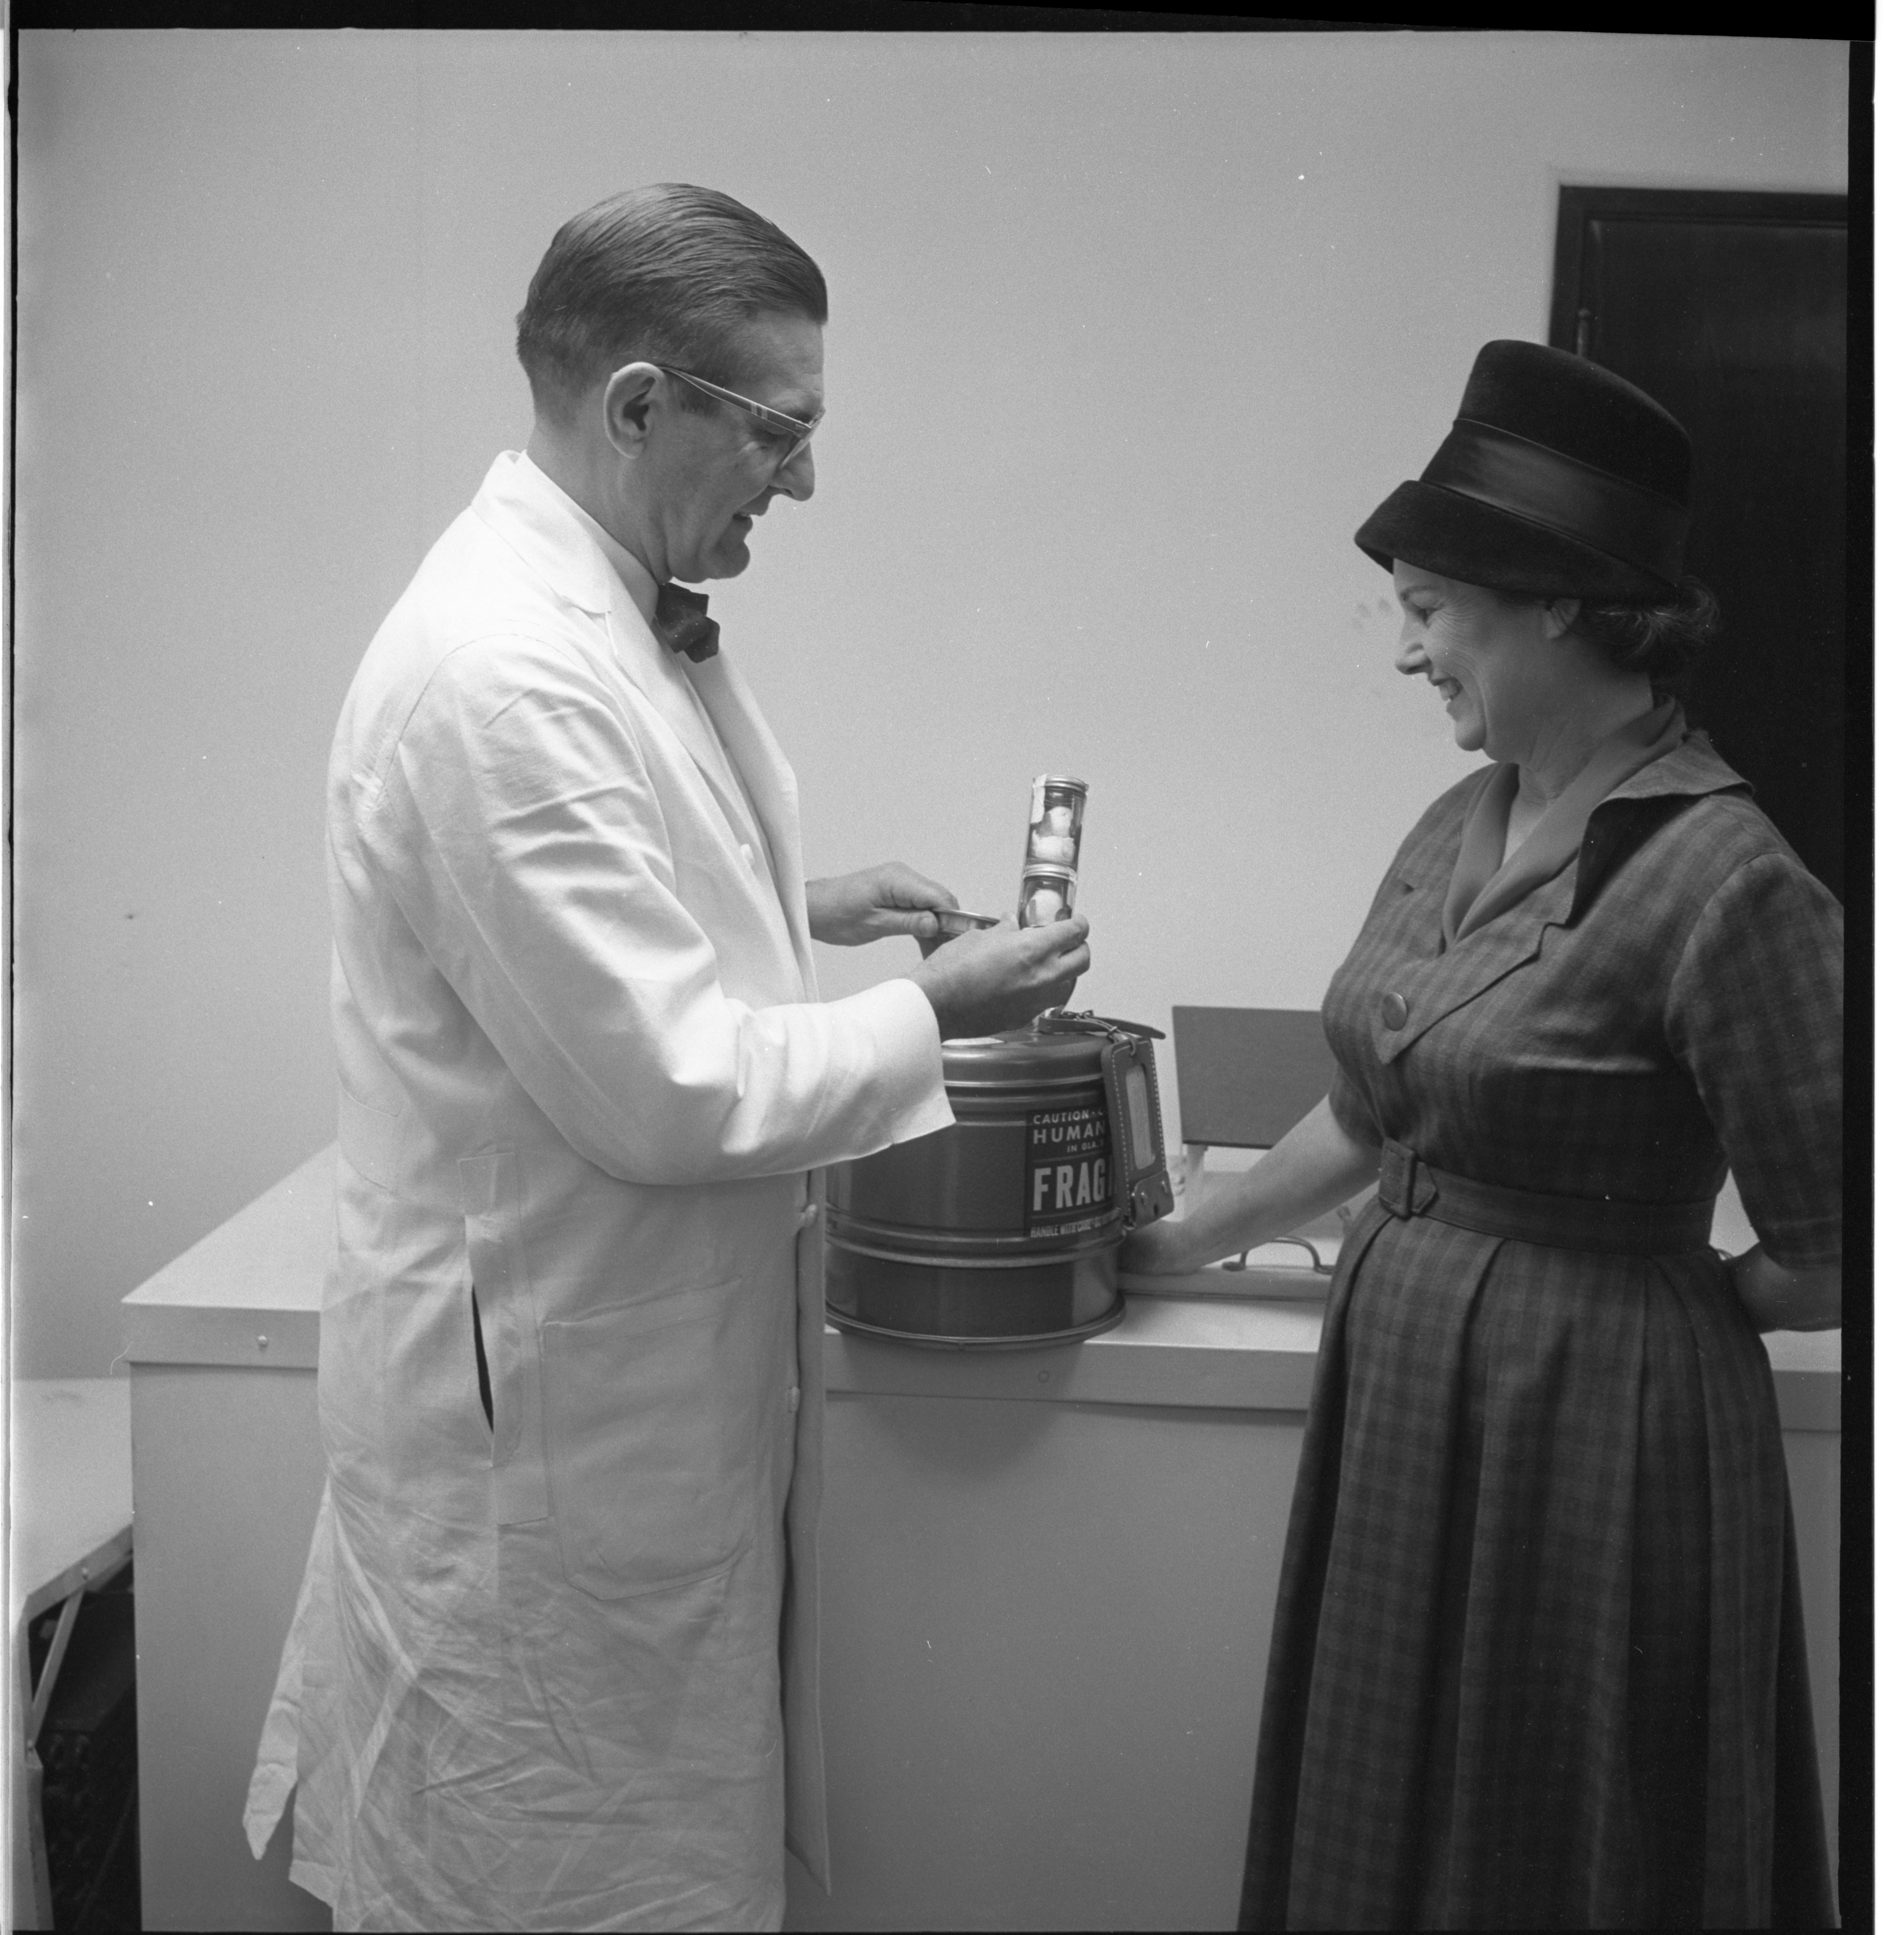 Mrs. Wilfred Graf, Of The Numa Club, Donates A Container Used For Transporting Donor Eyes To Dr. John Henderson At The Michigan Eye Collection Center, January 1962 image